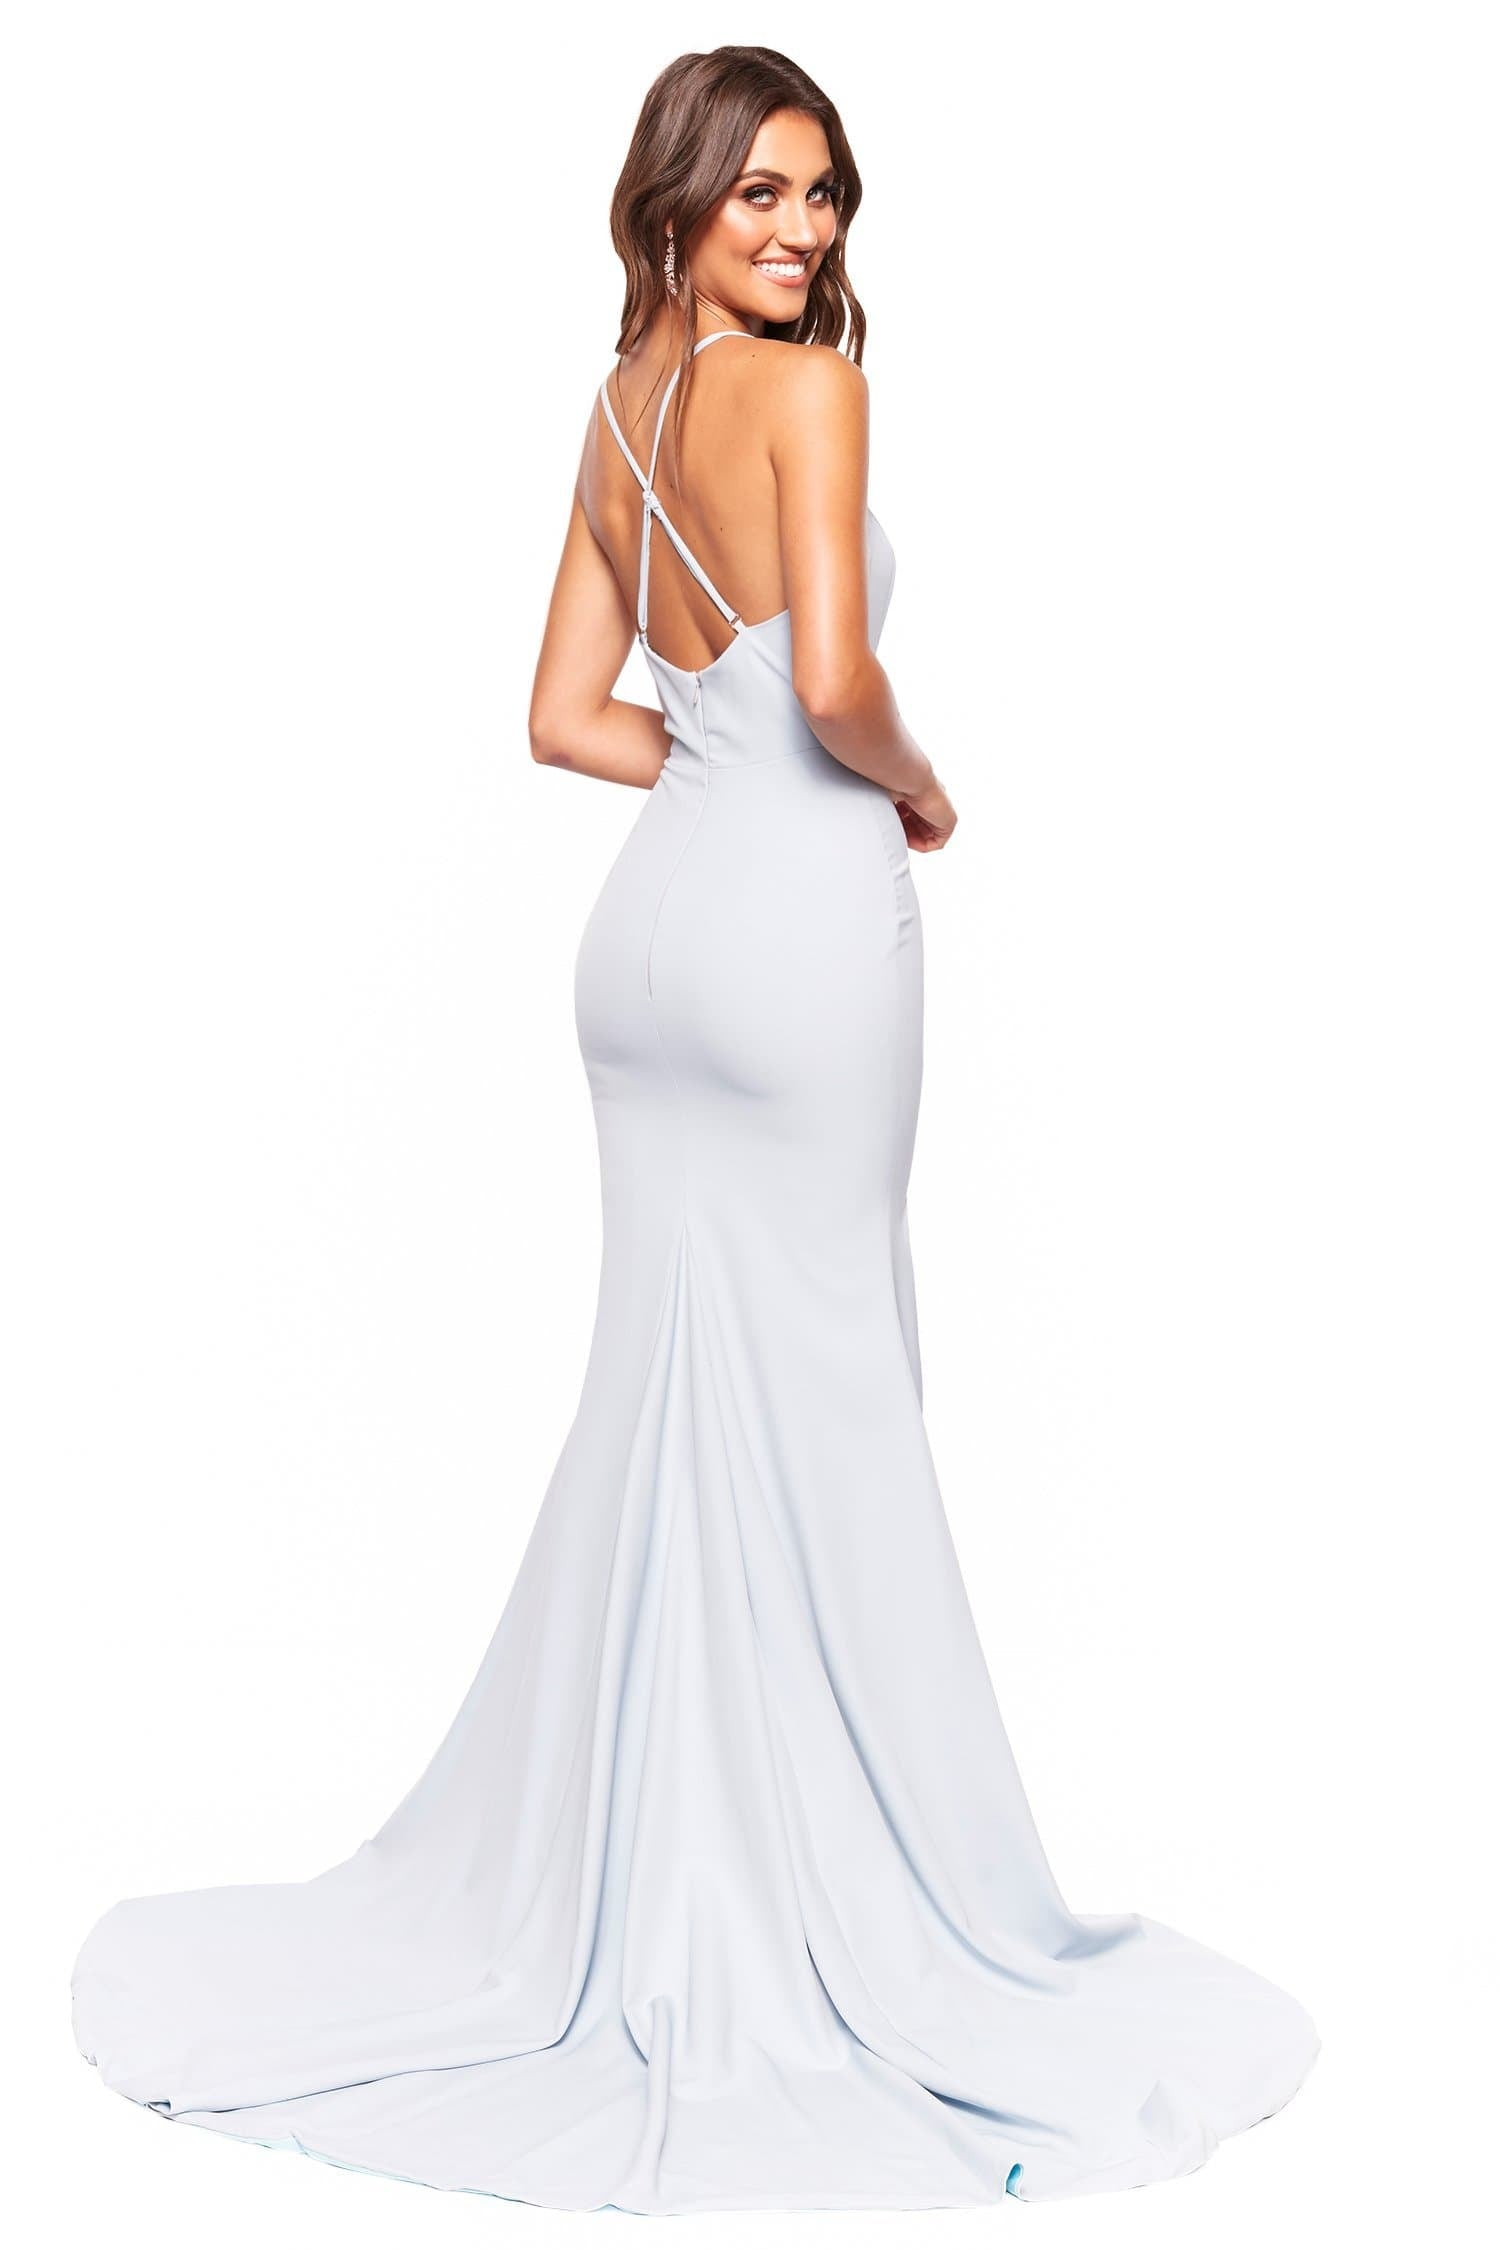 A&N Luxe Celine - Sky Blue Gown with Plunge Neck & Side Slit